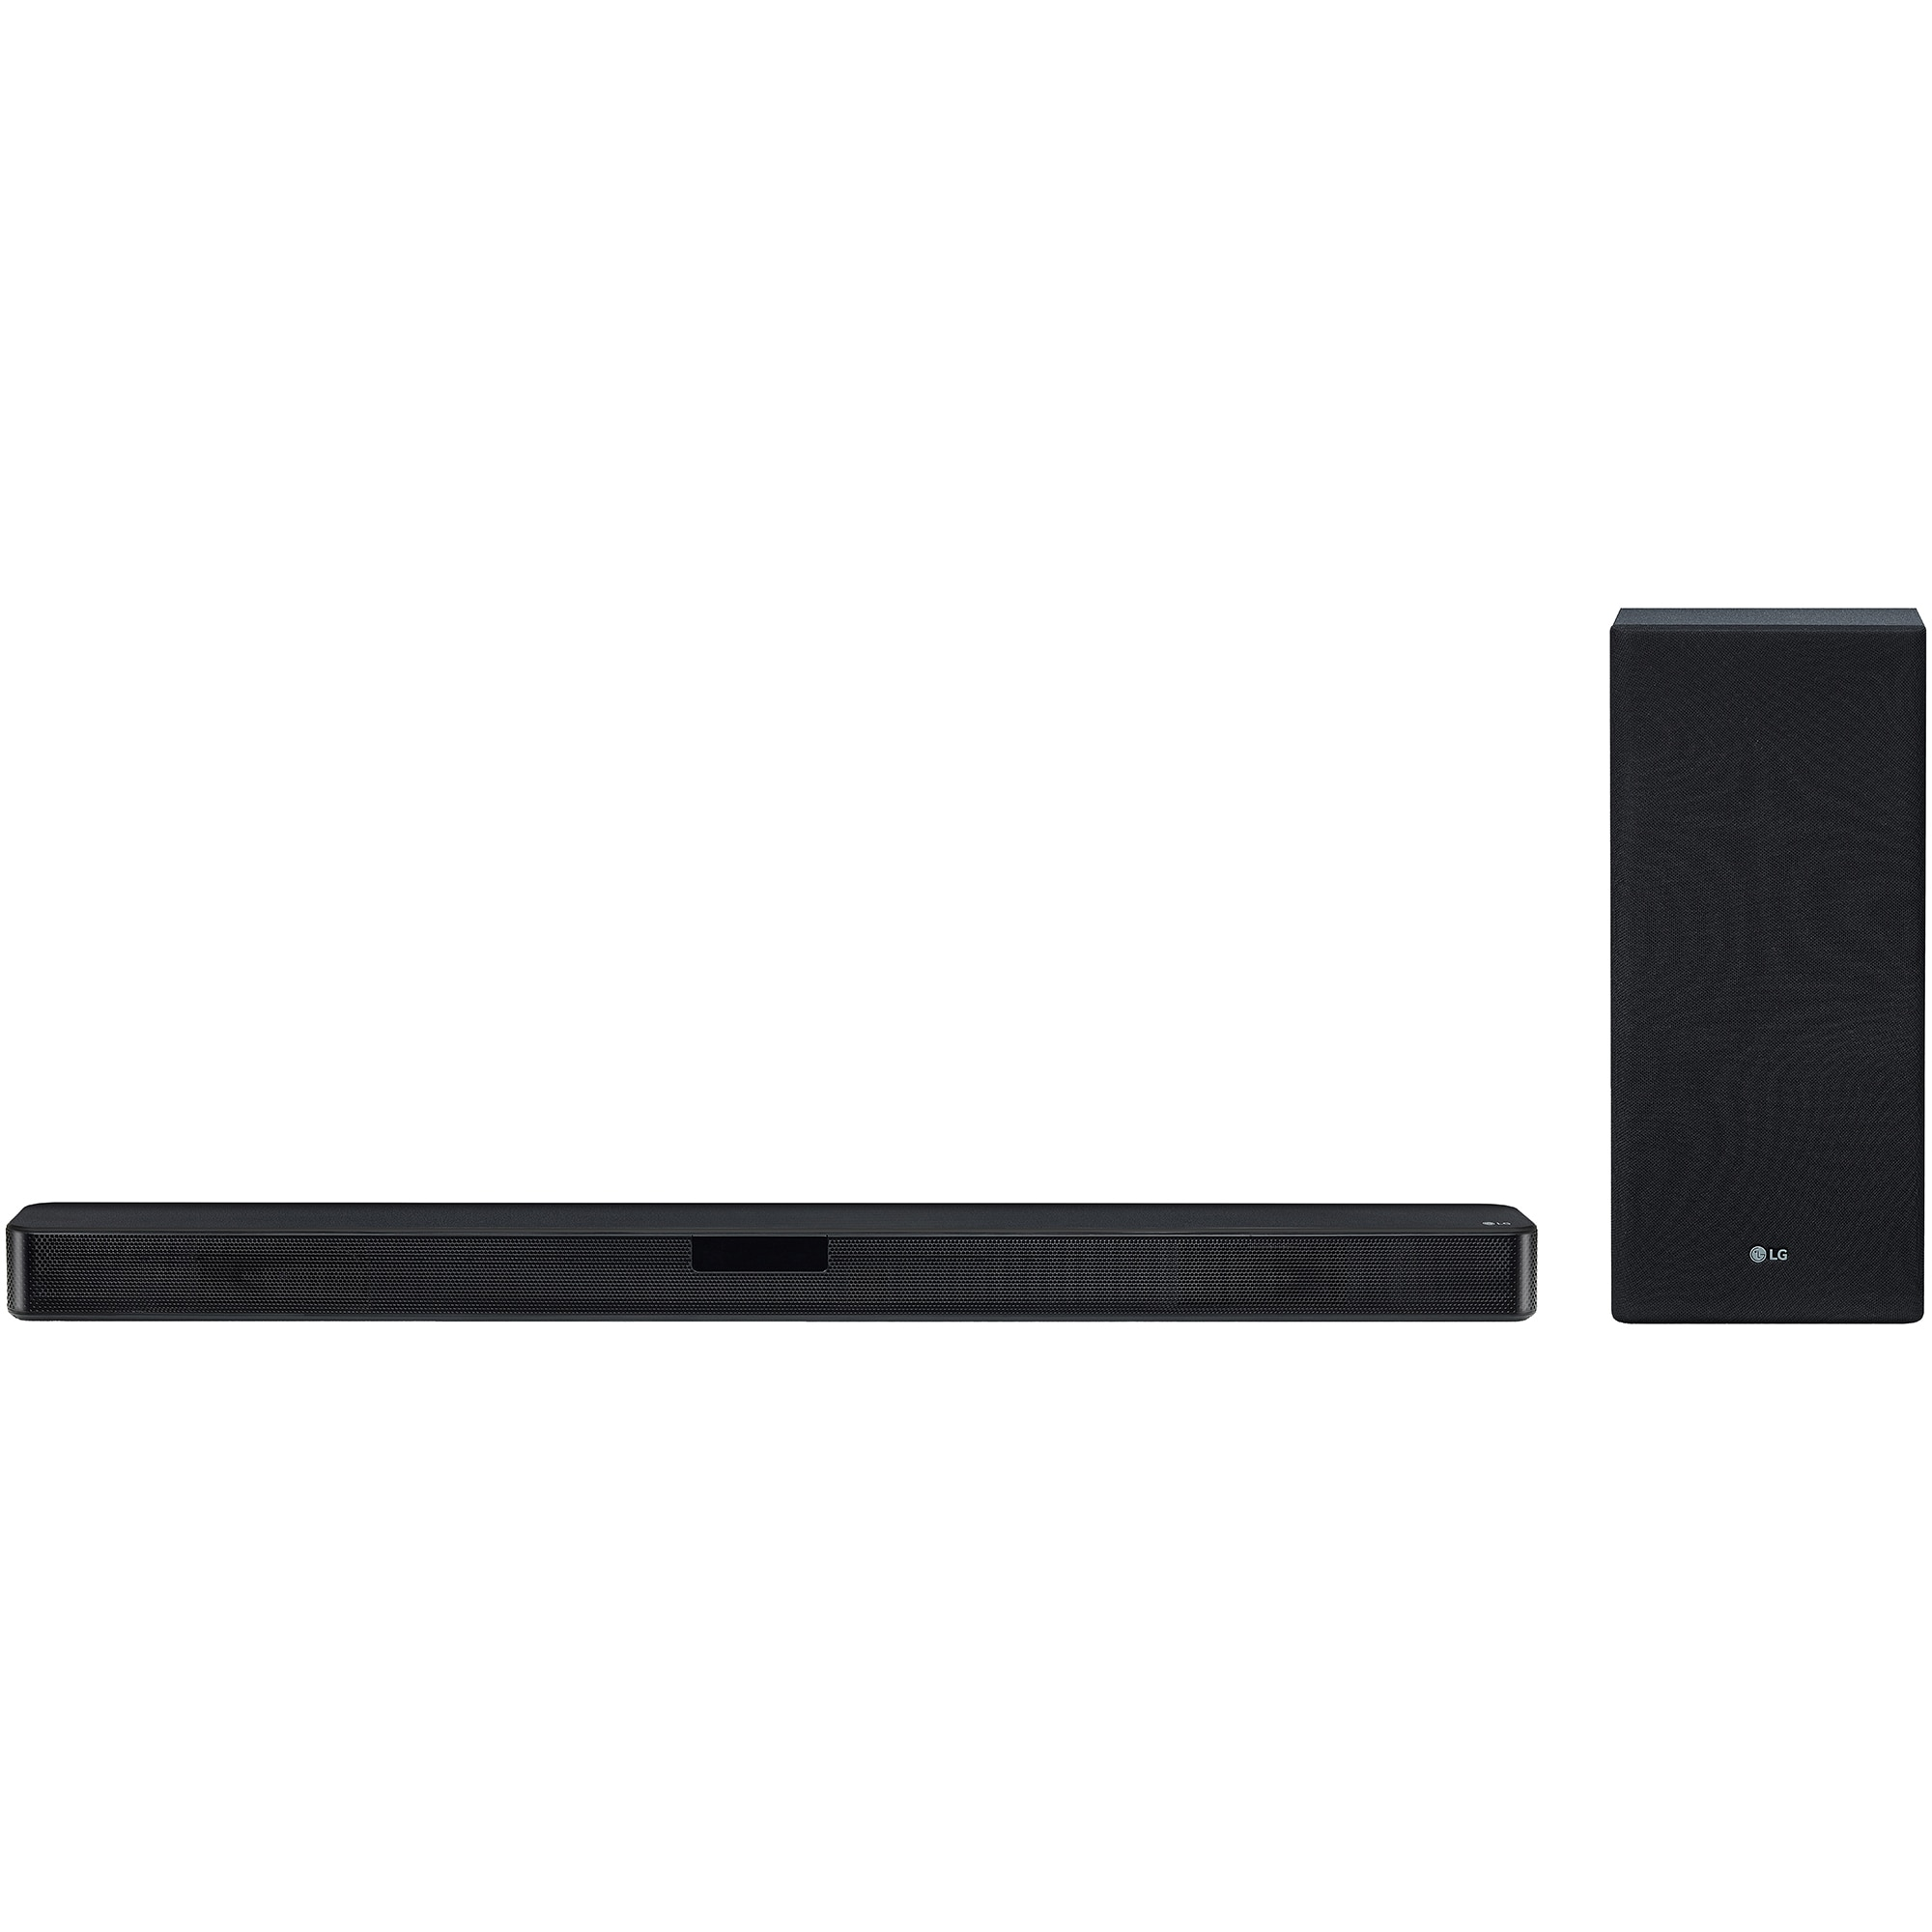 Fotografie Soundbar LG SL5Y, 400W, 2.1 , High Res Audio, DTS Virtual:X, Wirelss subwoofer , Wireless Rear Speaker-Ready